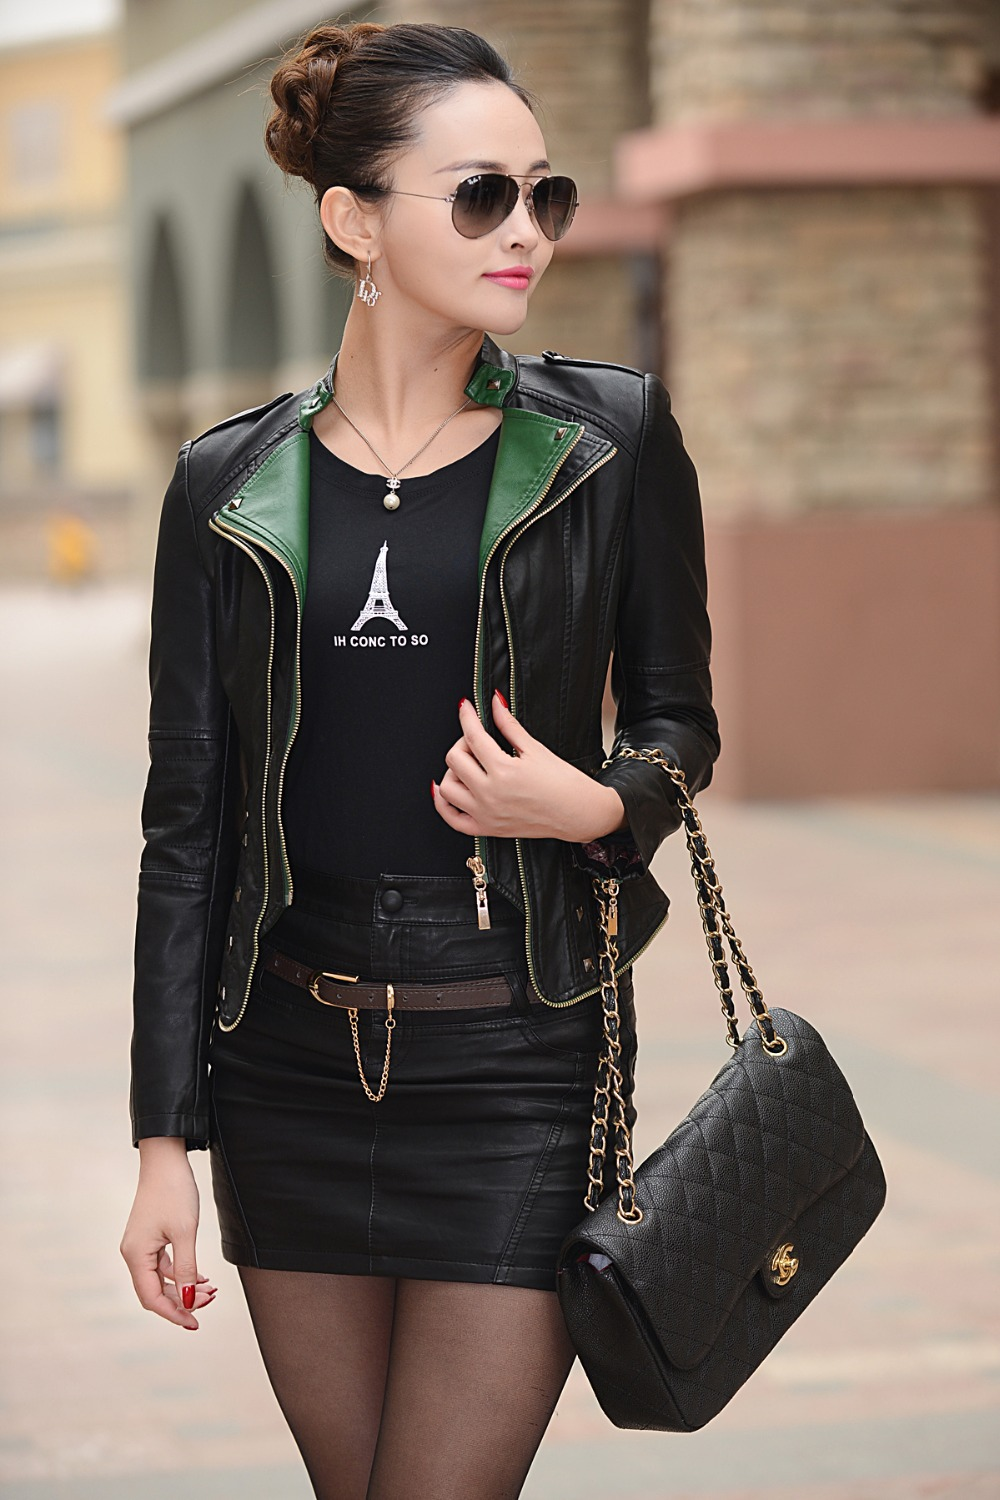 Feminina Jaqueta Feminin 2015 Leather Jacket Women Motorcycle Coat Slim Womens Short Biker Faux Leather Jackets Supernova Sale(China (Mainland))